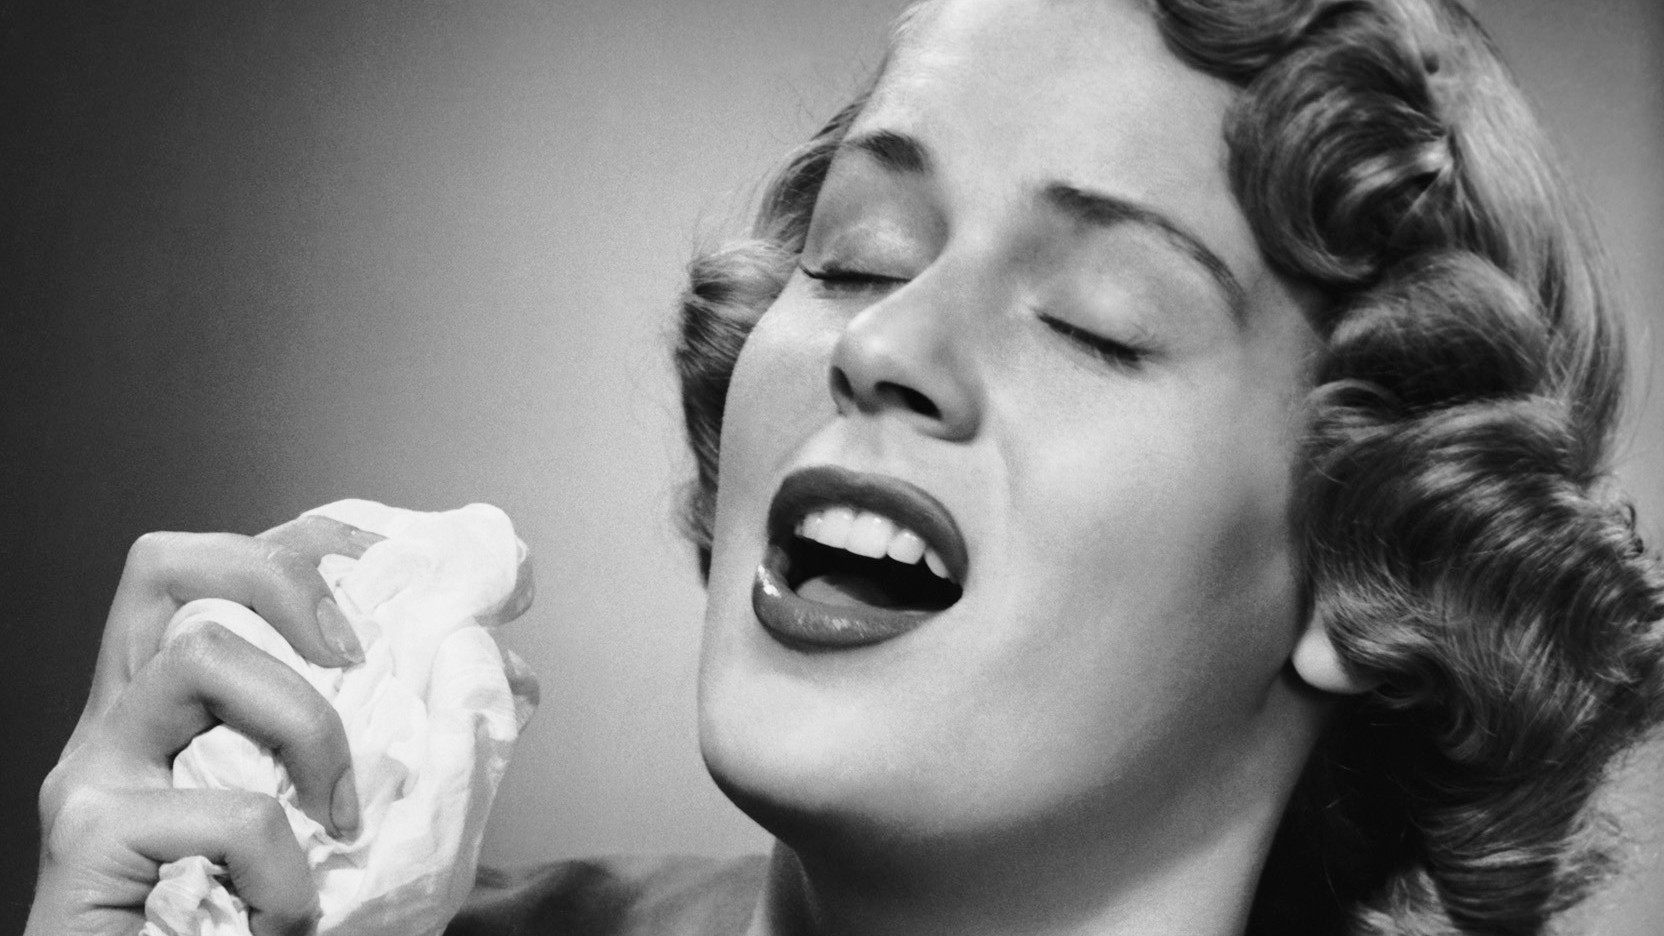 That a sneeze can generate a wind of 100 mph, and a cough comes out at 60 mph? -